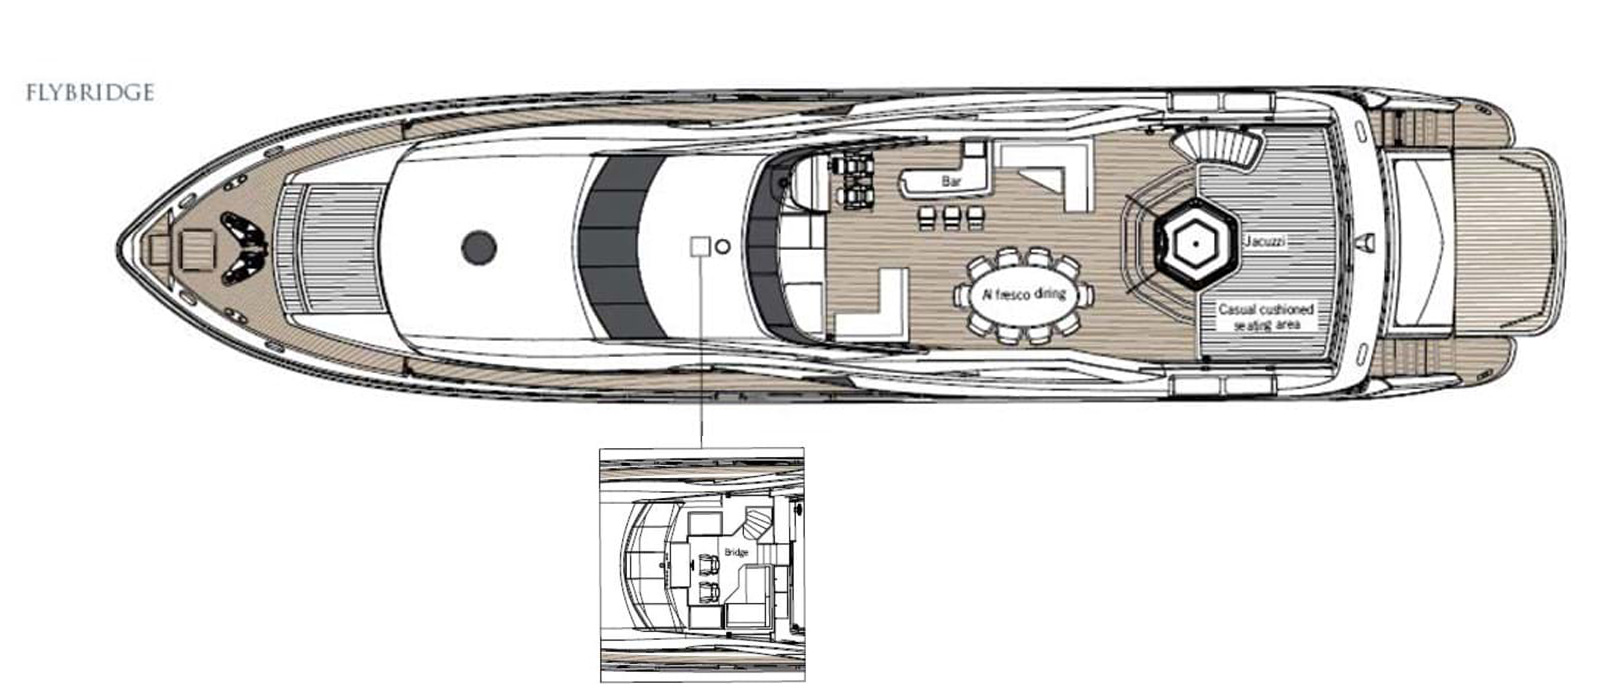 Frivolous - Flybridge Layout